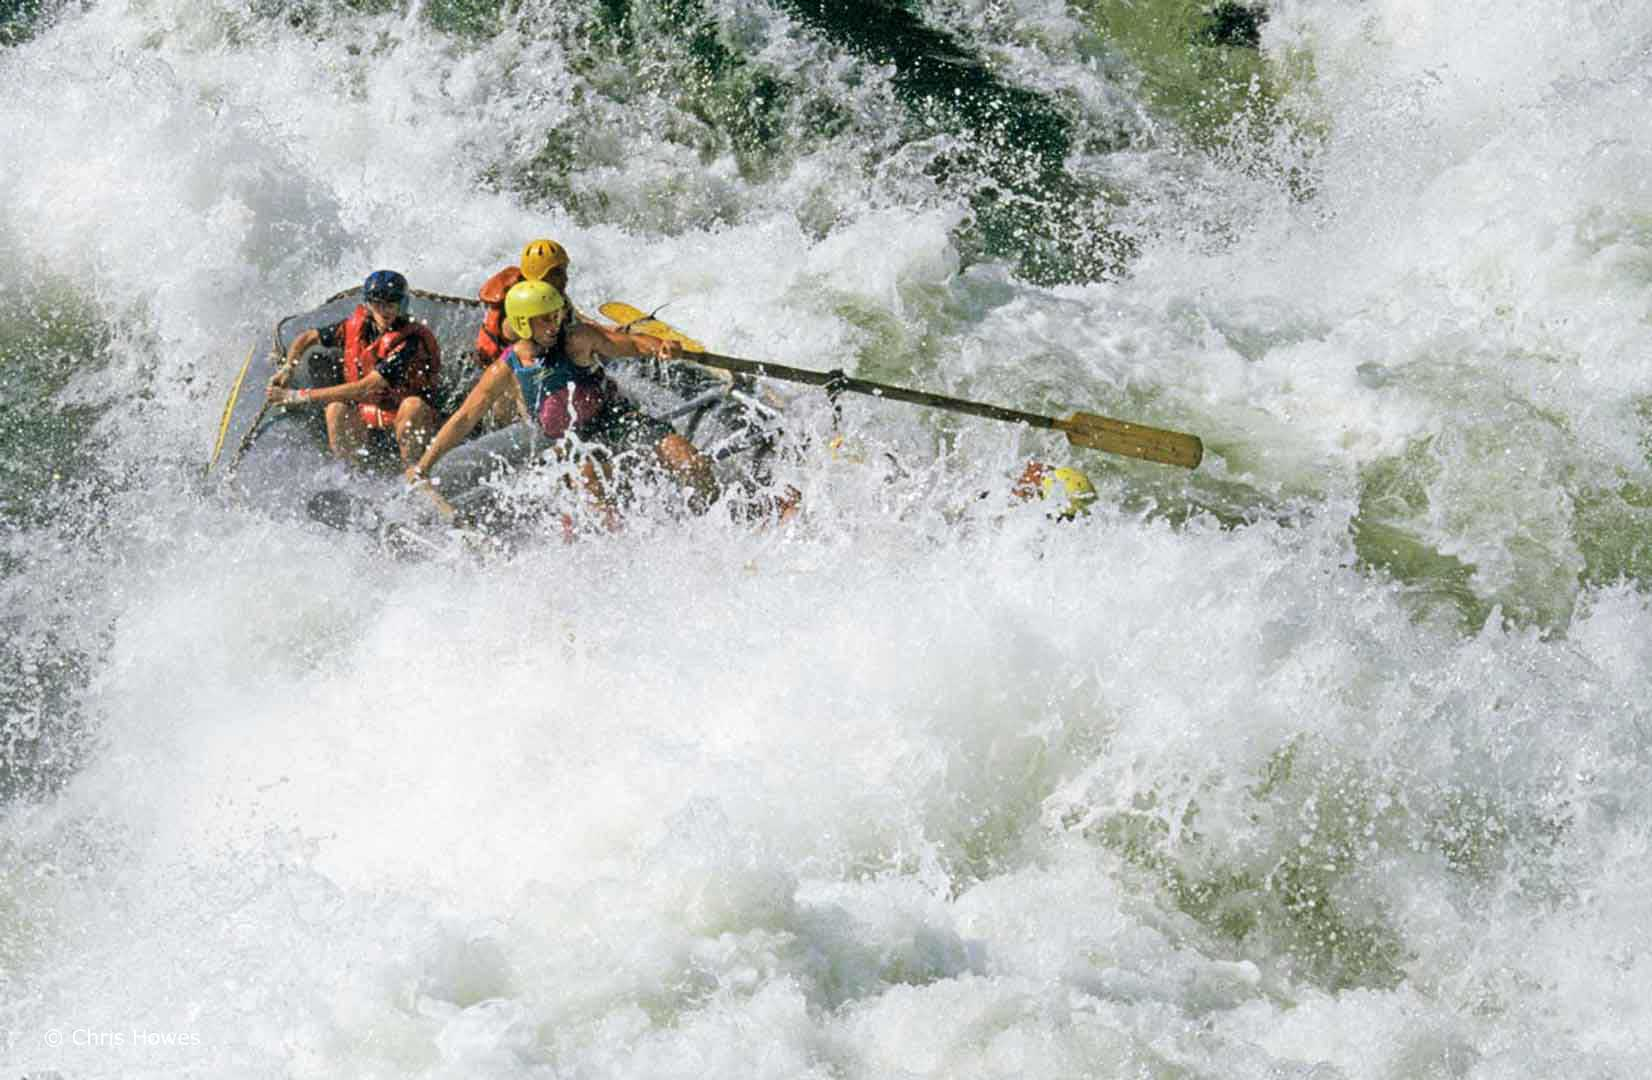 Whitewater rafting, Zambezi River